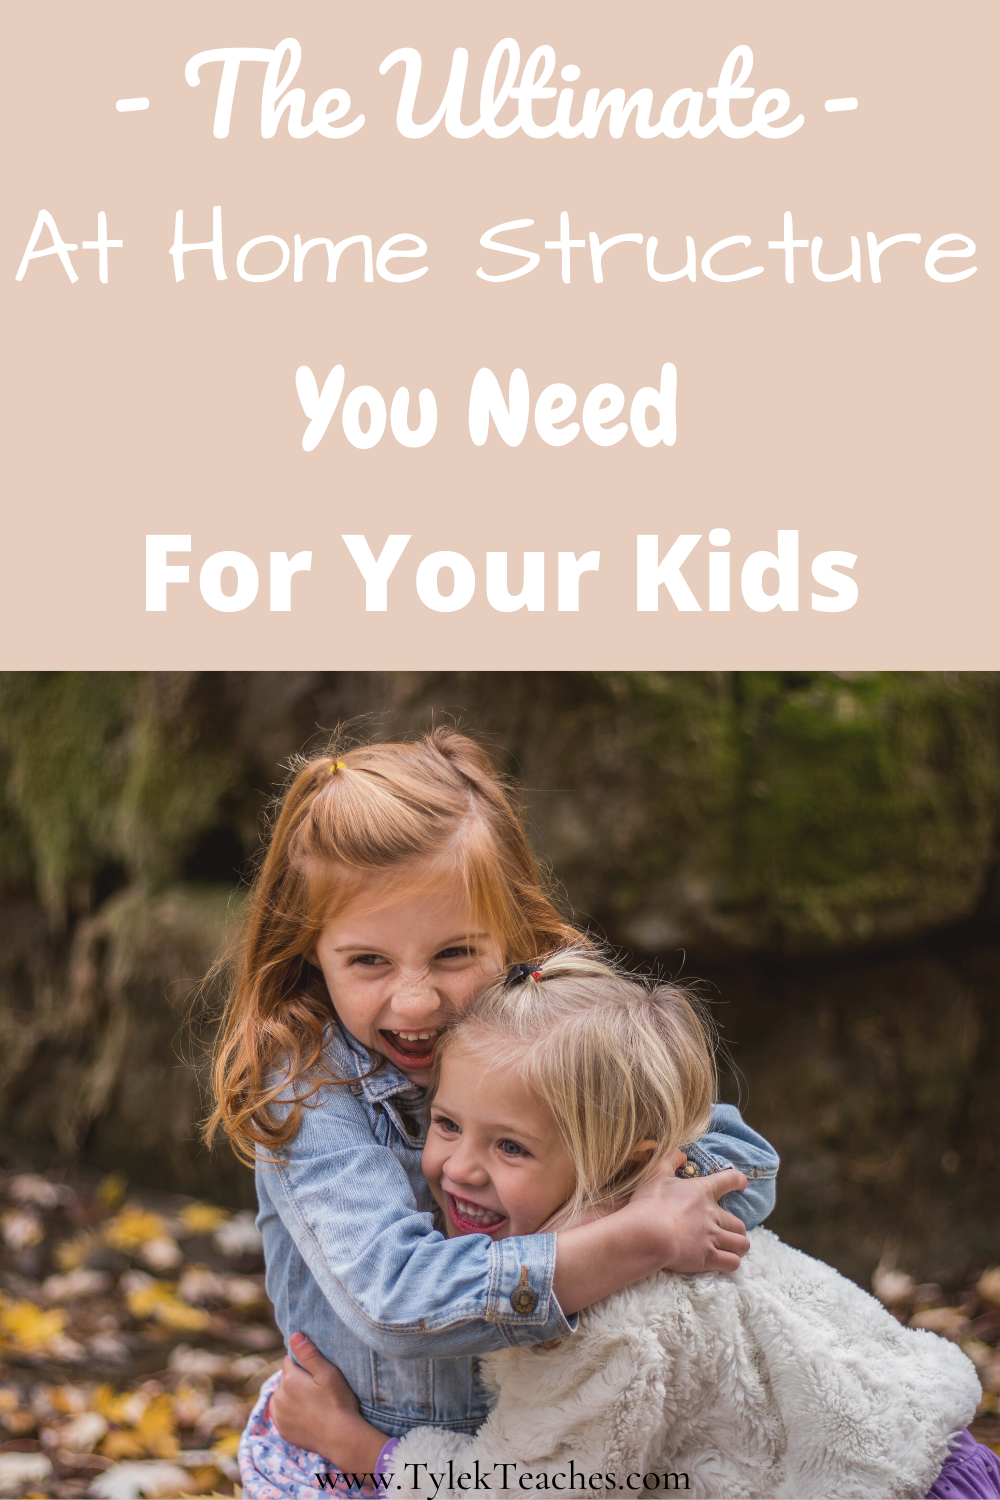 The Must Have Structure For Your Preschooler When At Home In 2020 Funny Nicknames For Girls Nicknames For Girls Funny Nicknames